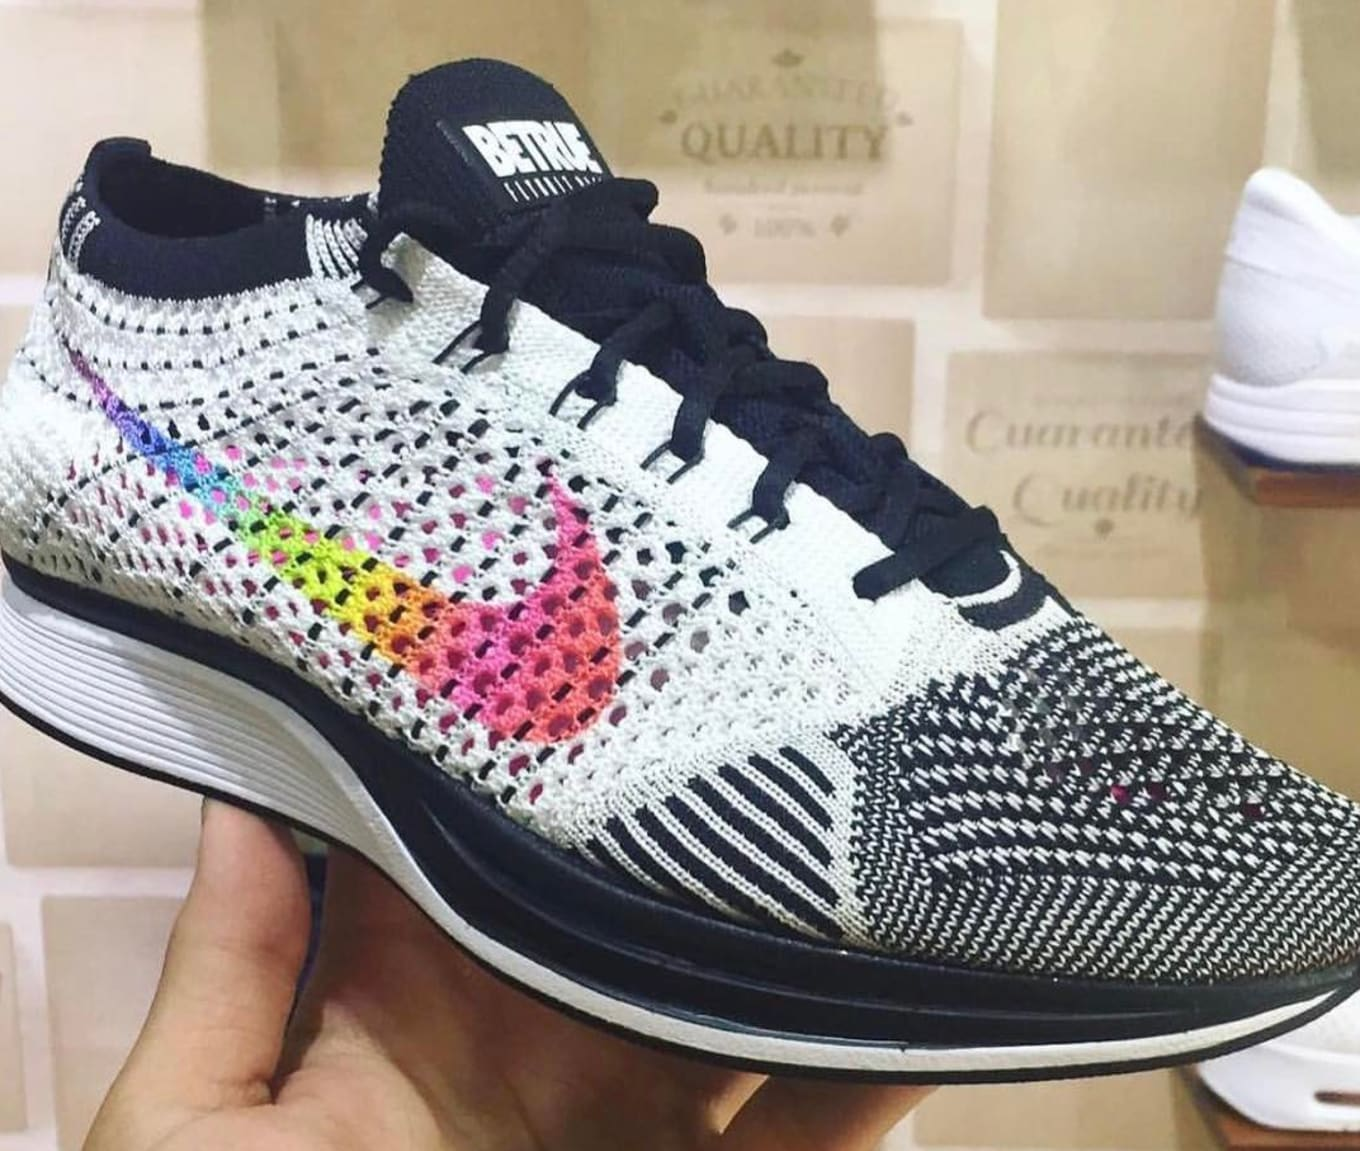 d7d7f889932 First look at the  Be True  Flyknit Racers.